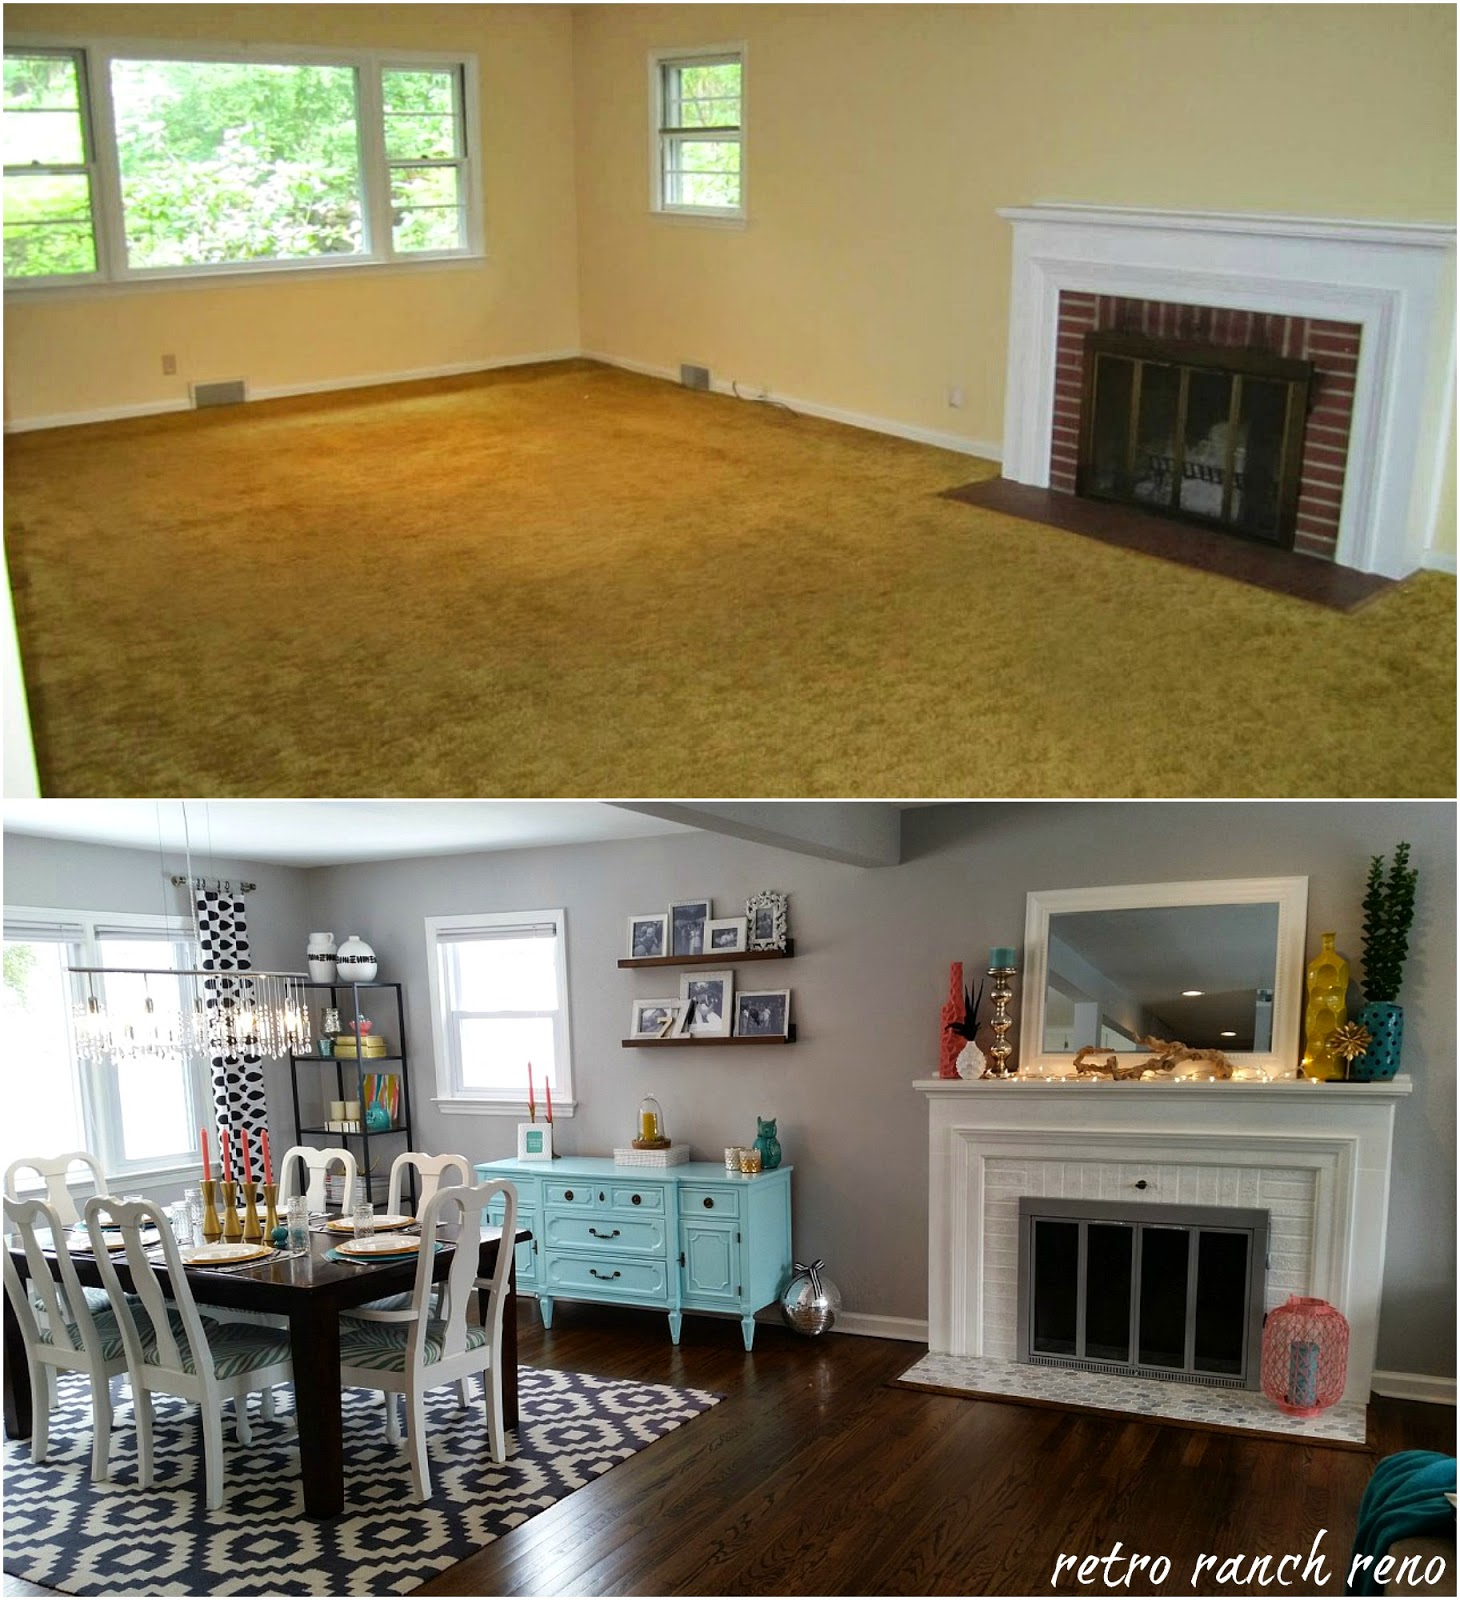 Living And Dining Room: Retro Ranch Reno: Our Rancher: Before & After